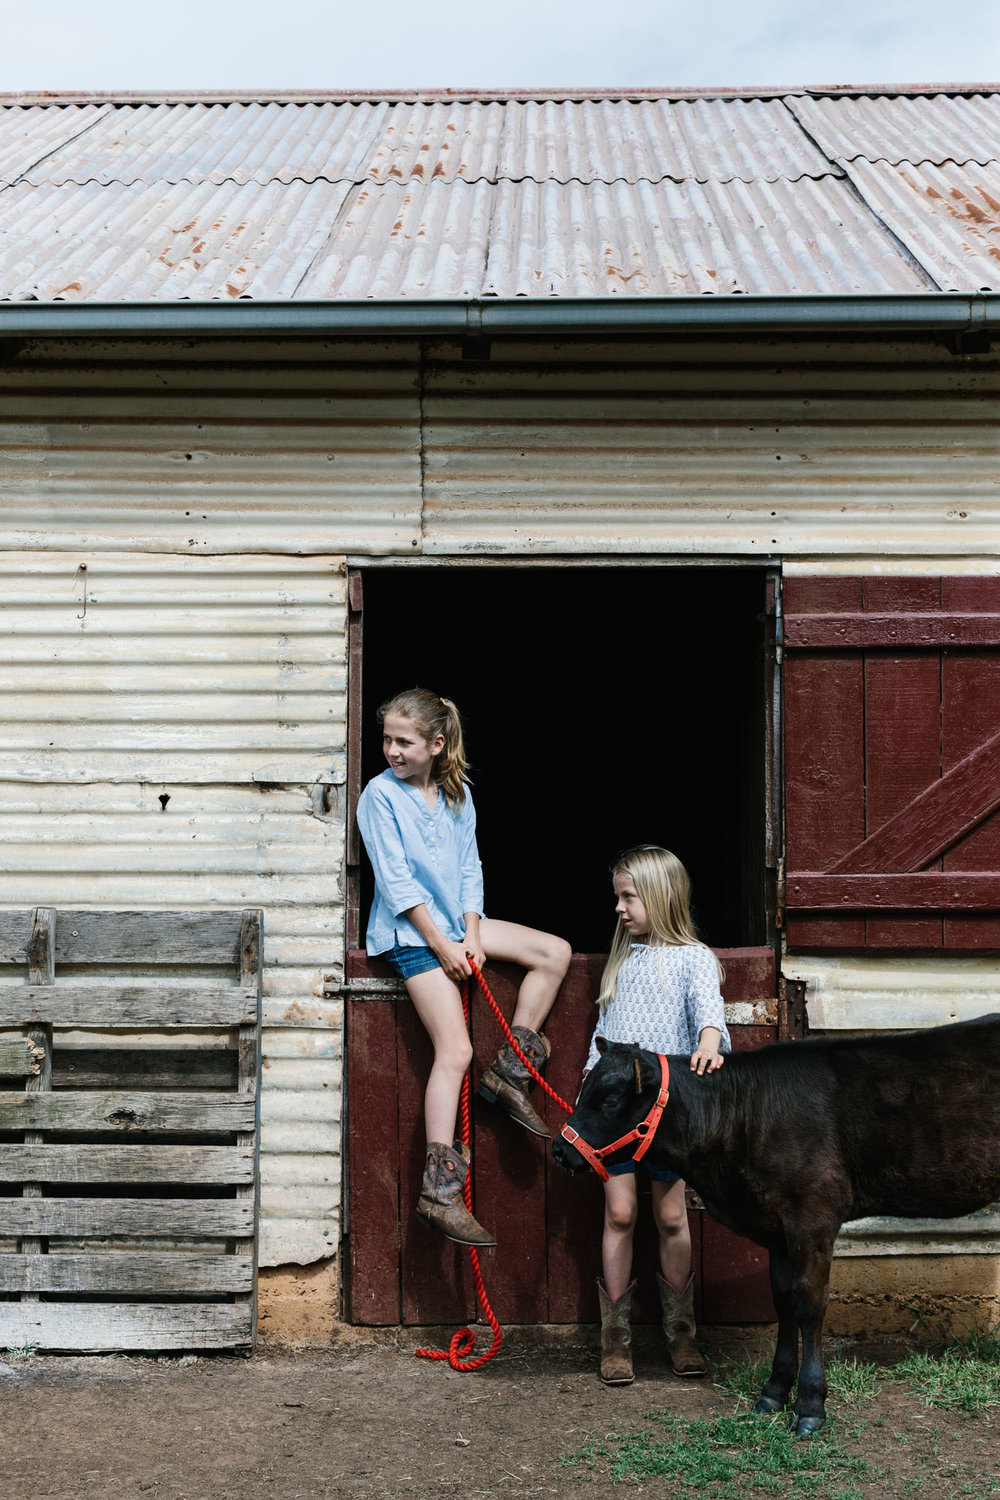 Marnie Hawson, Melbourne interior photography, for Country Style magazine, February 2018